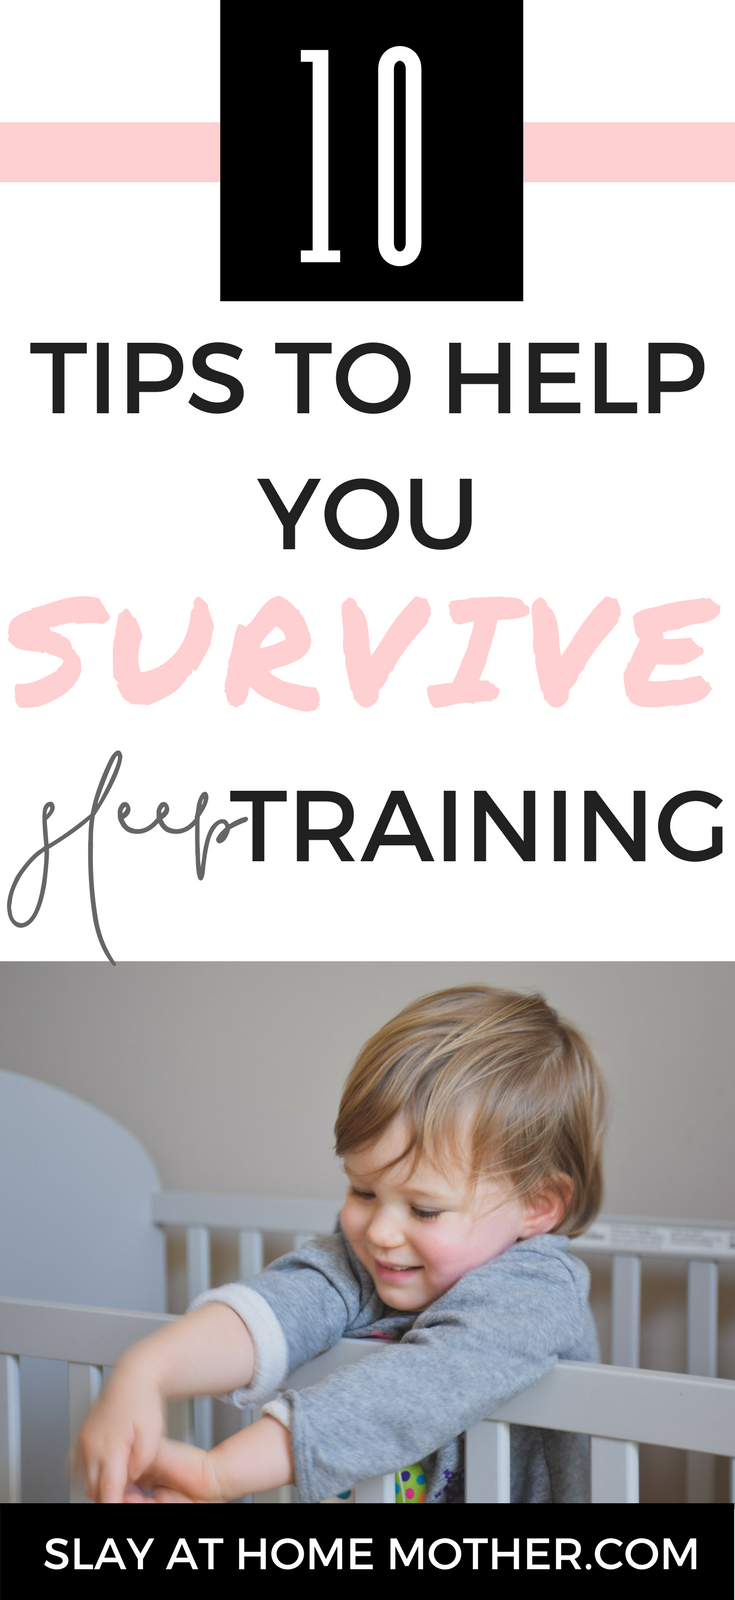 10 Tips To Help You Survive Sleep Training #sleeptraining #cosleeping #cio #motherhood #ferber SlayAtHomeMother.com